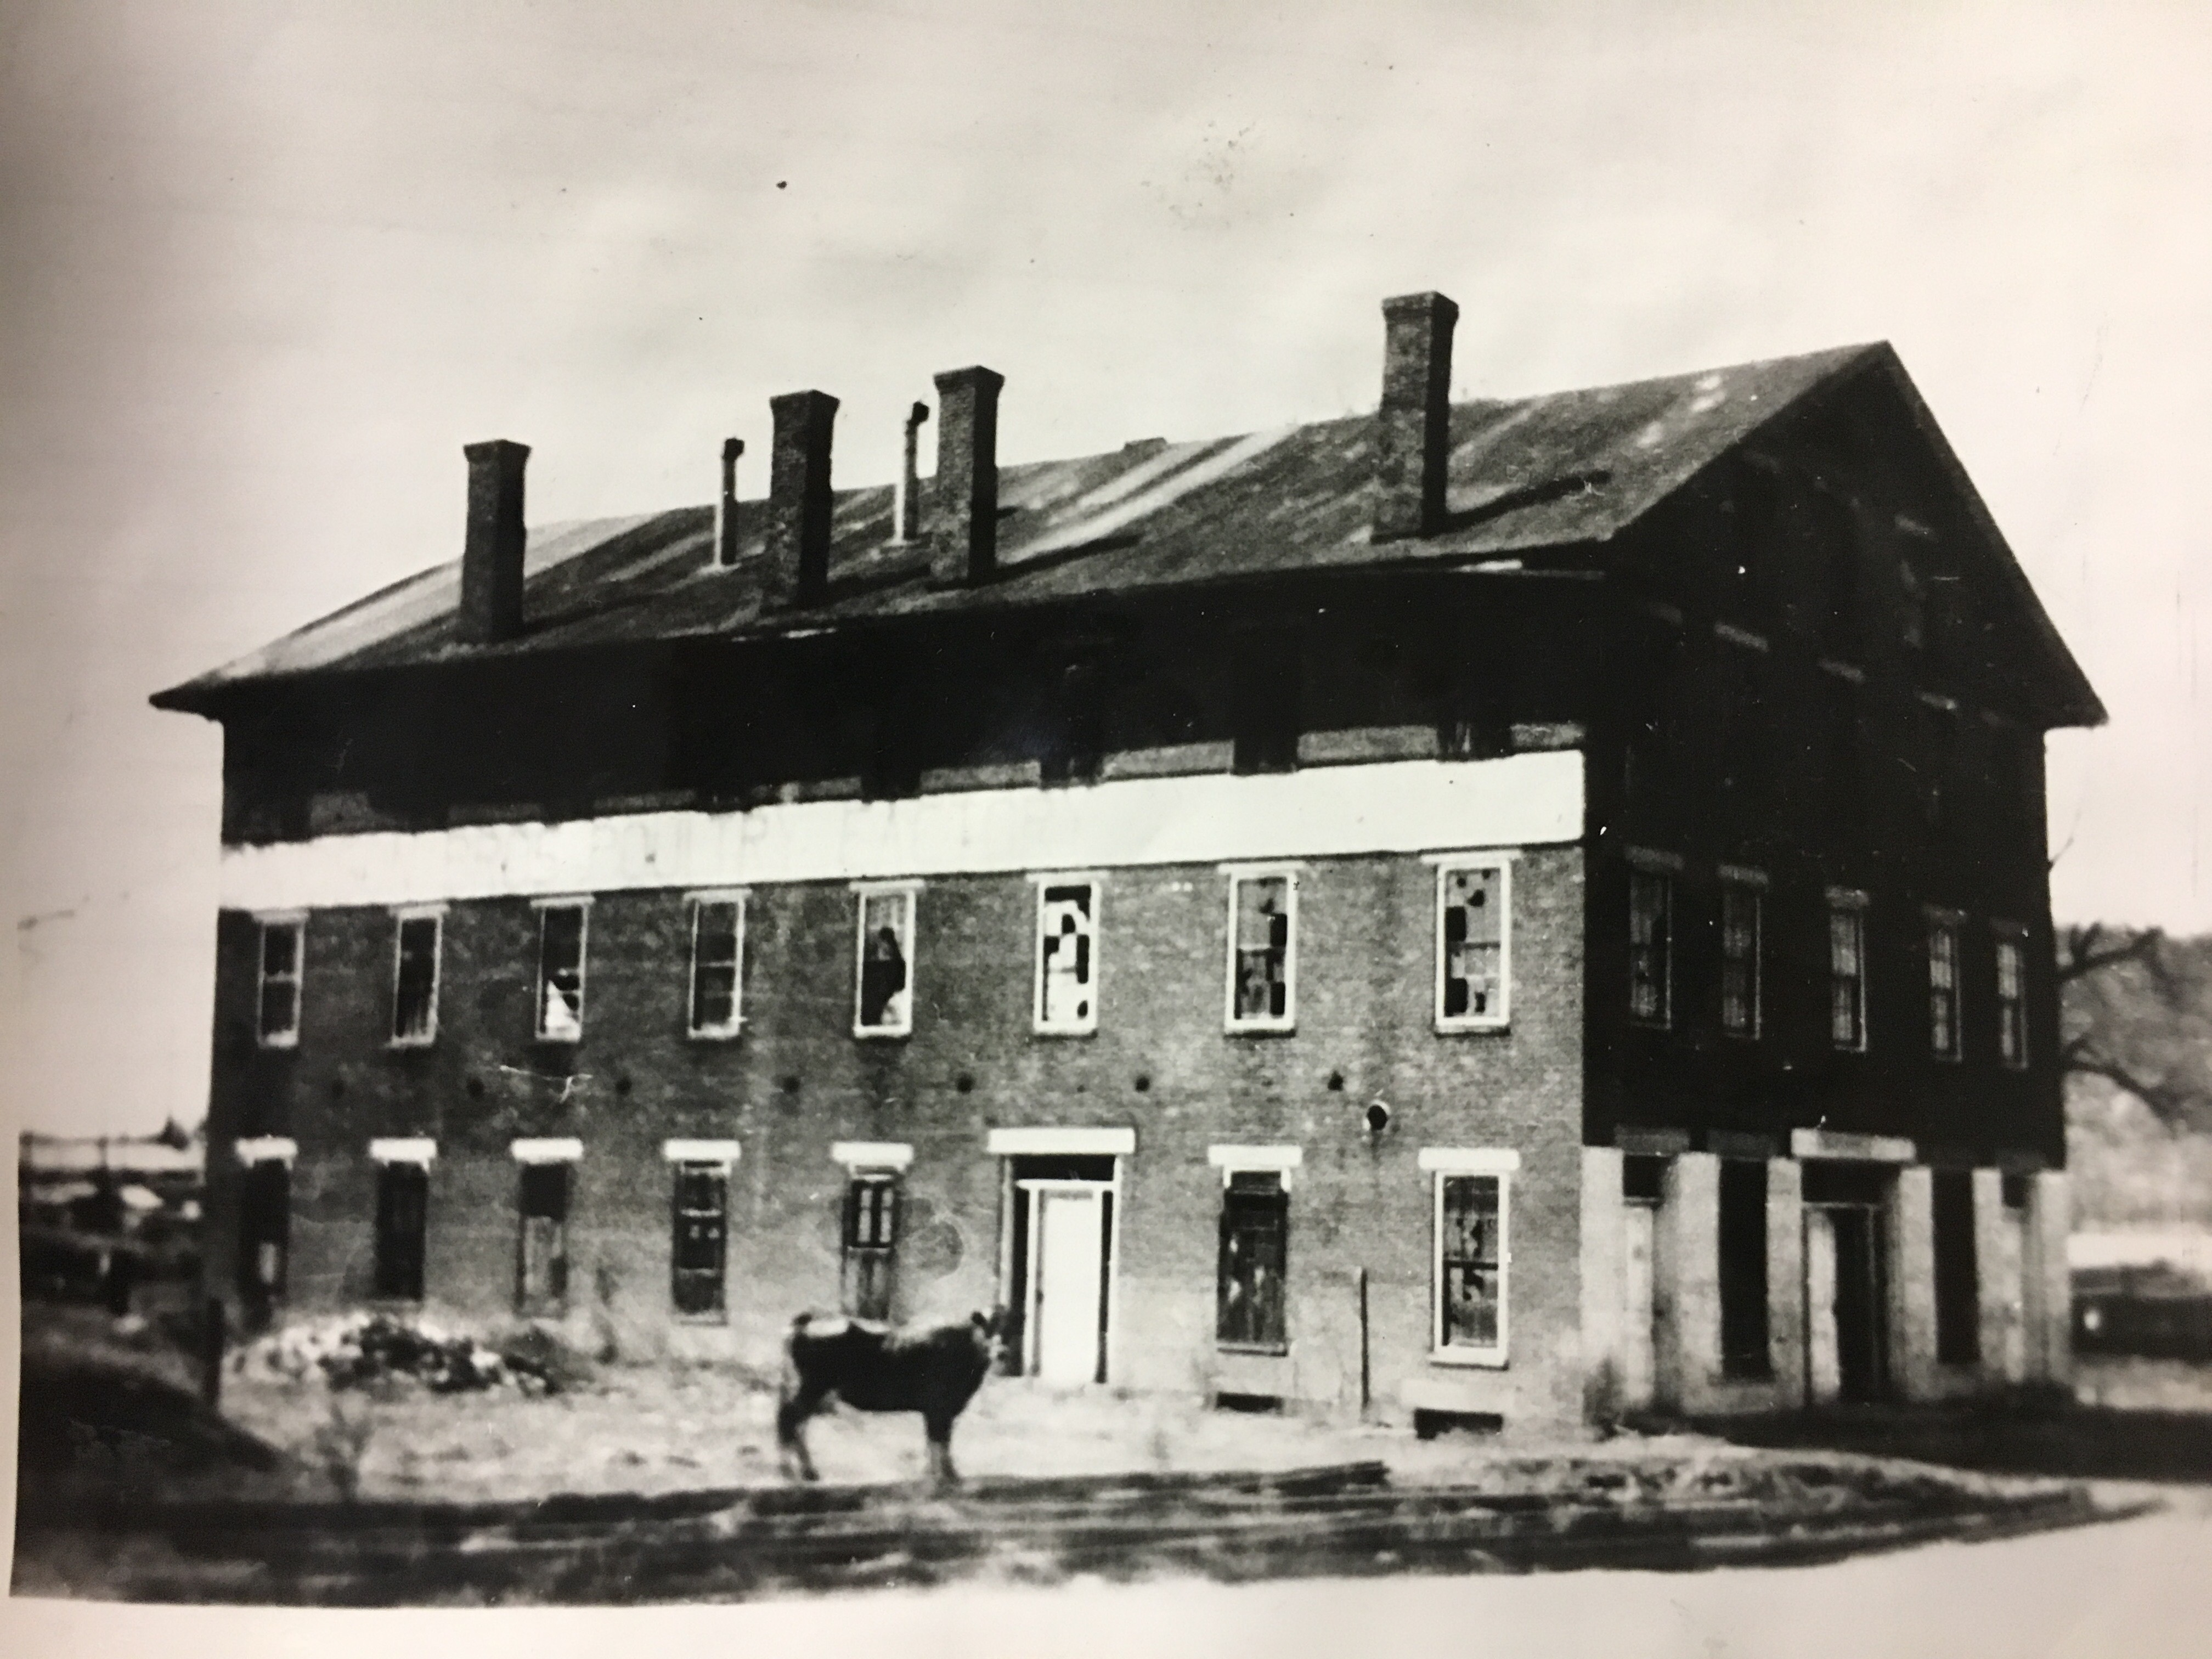 Built in 1857 as a hotel near the 300 block East of B Street, this building was converted into Col. Zeigler's headquarters as well as a hospital and prison on the upper floors. The building was badly damaged in the 1937 flood and razed.